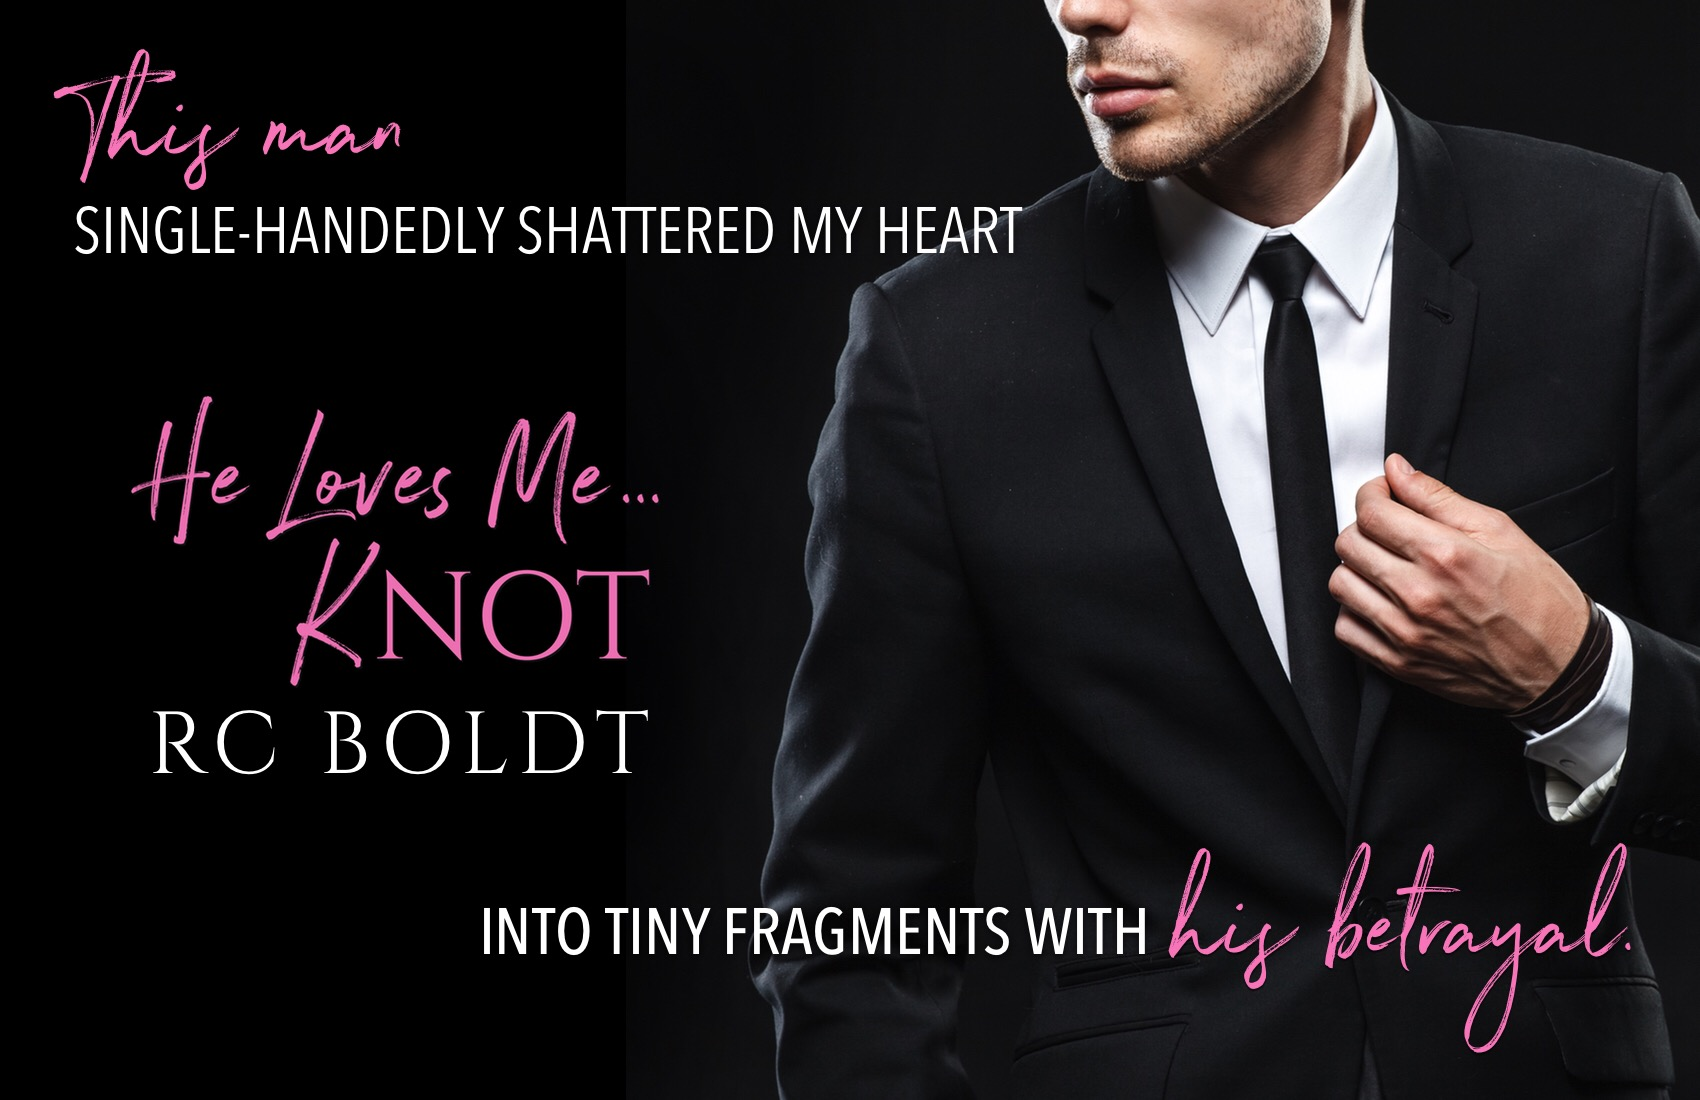 HE LOVES ME… KNOT by RC Boldt